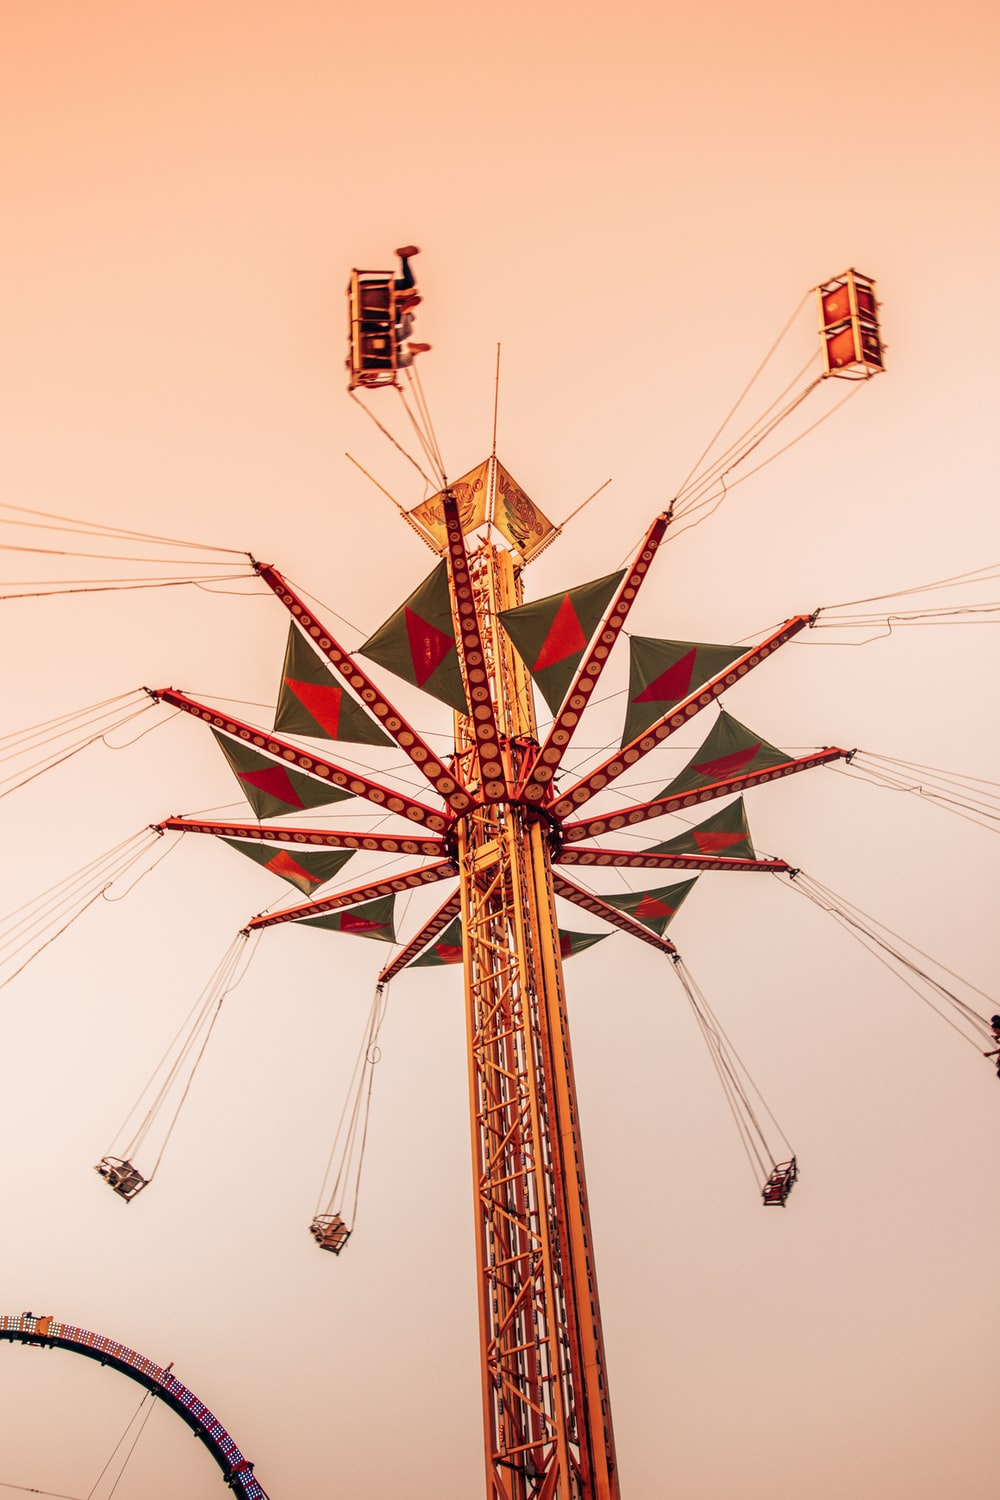 brown and red ferris wheel